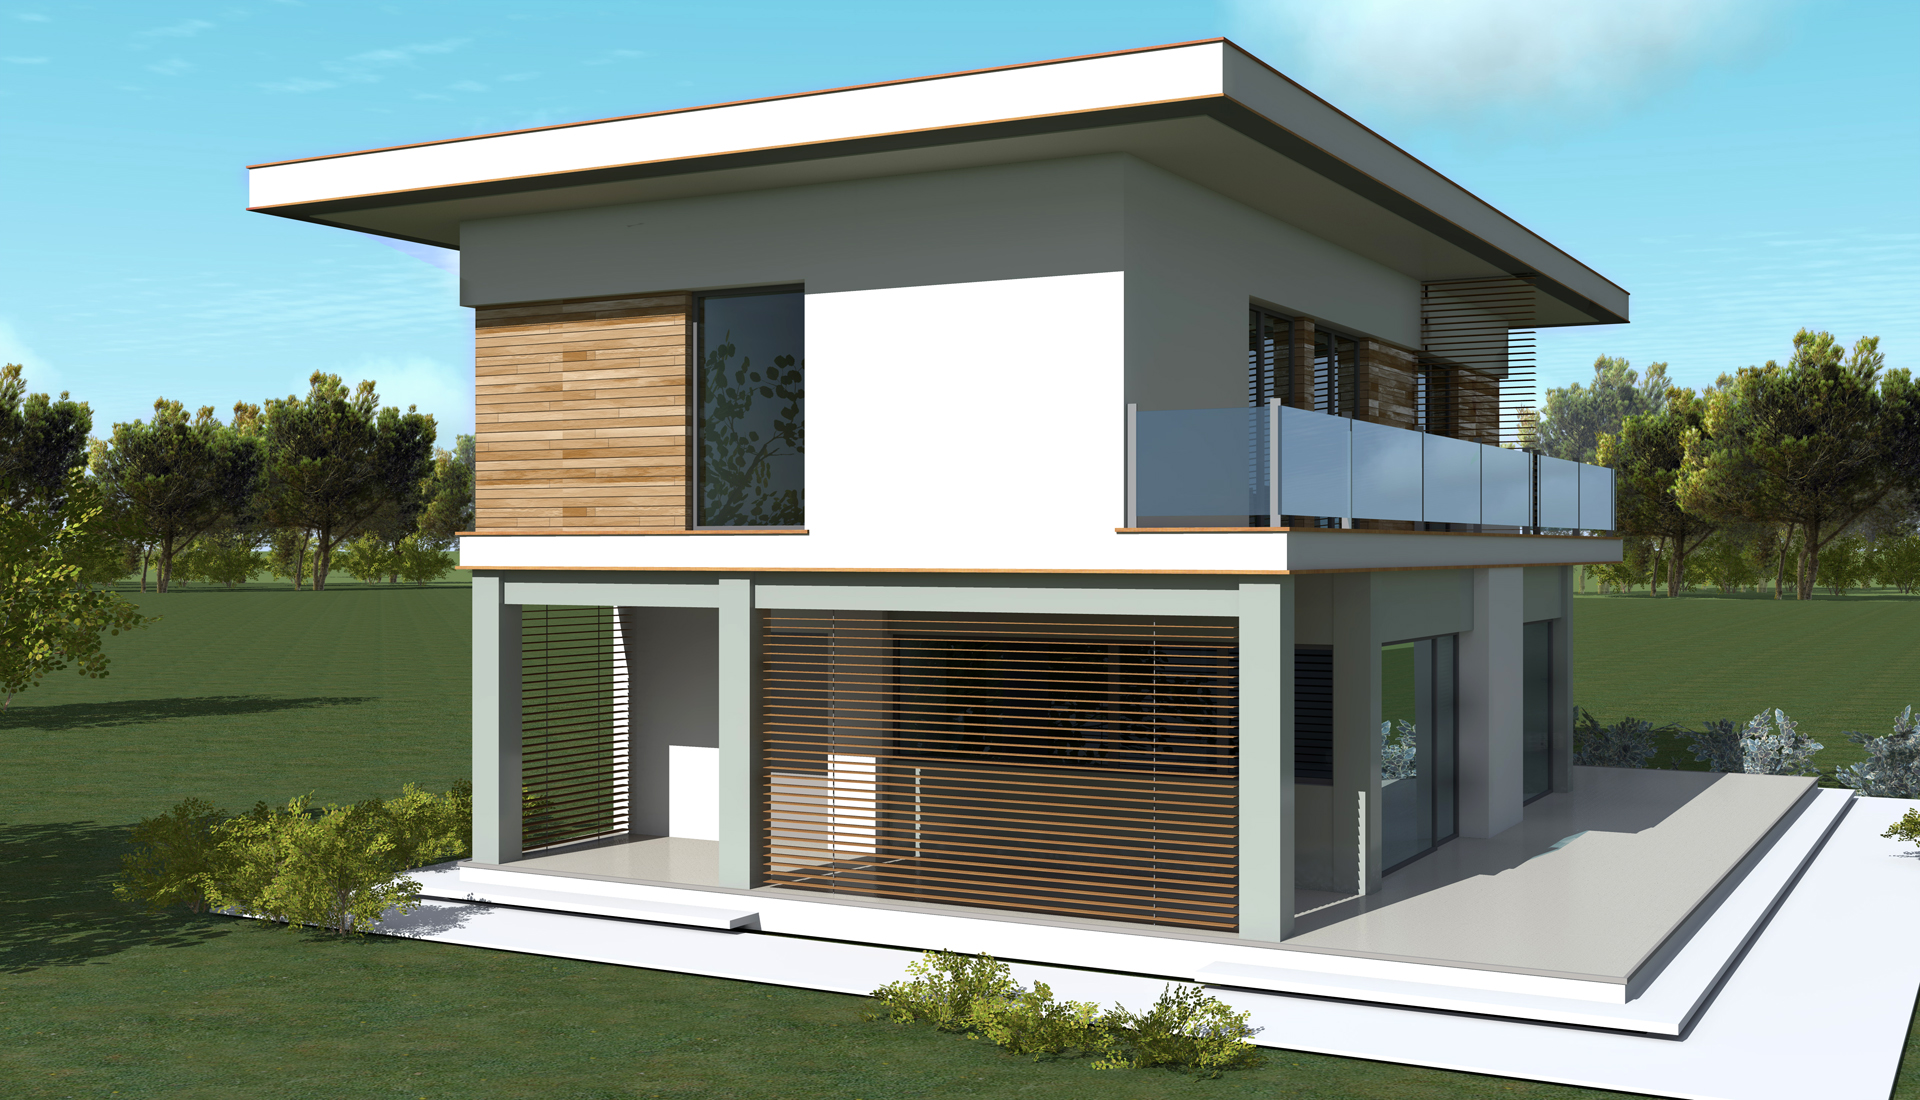 Casa moderna plan is 10 150m2 for Casas modernas 10 x 20